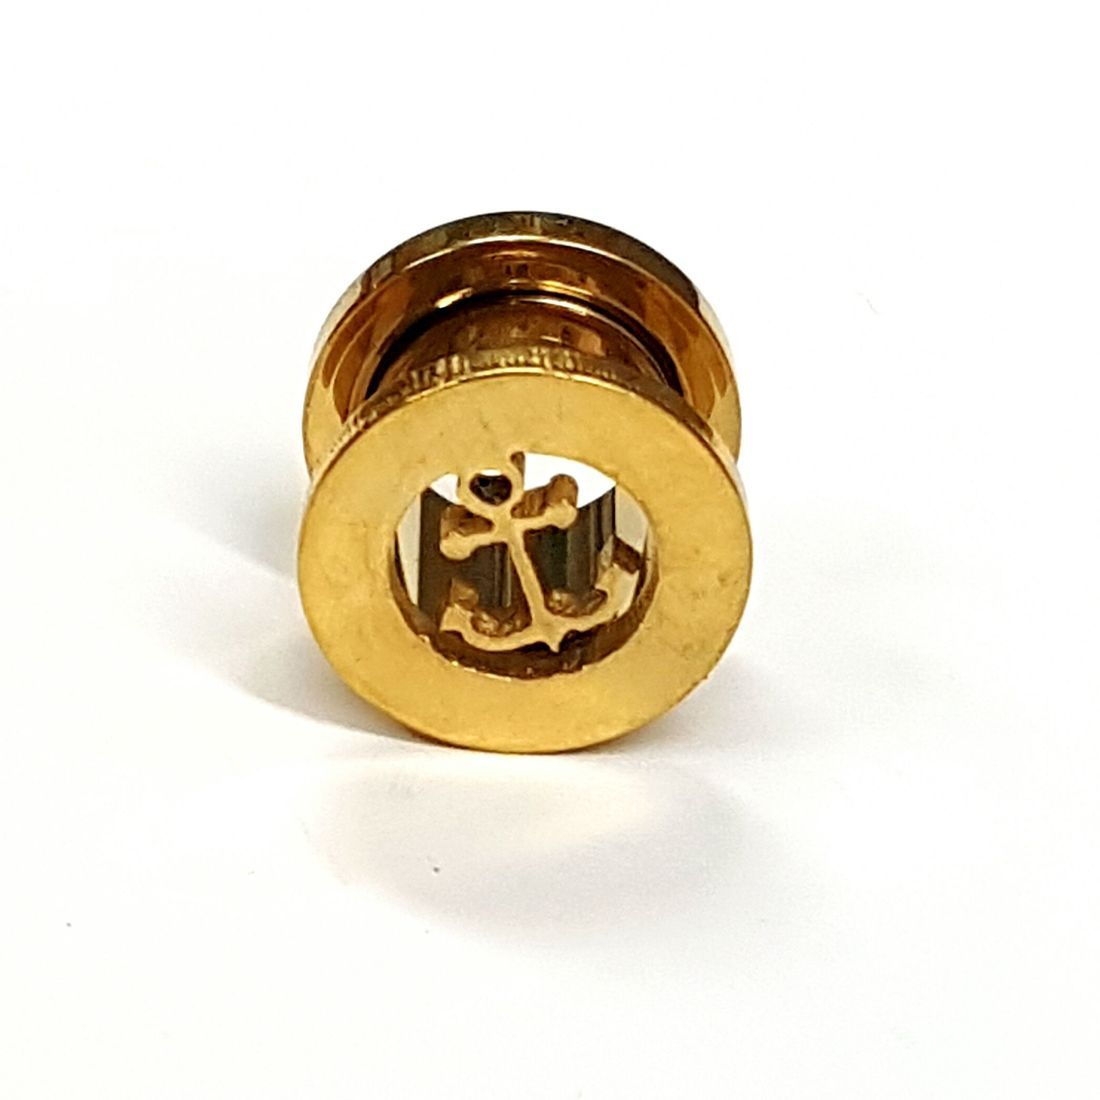 10mm titanium plug available at kazbah online or our Leicester City Centre Store